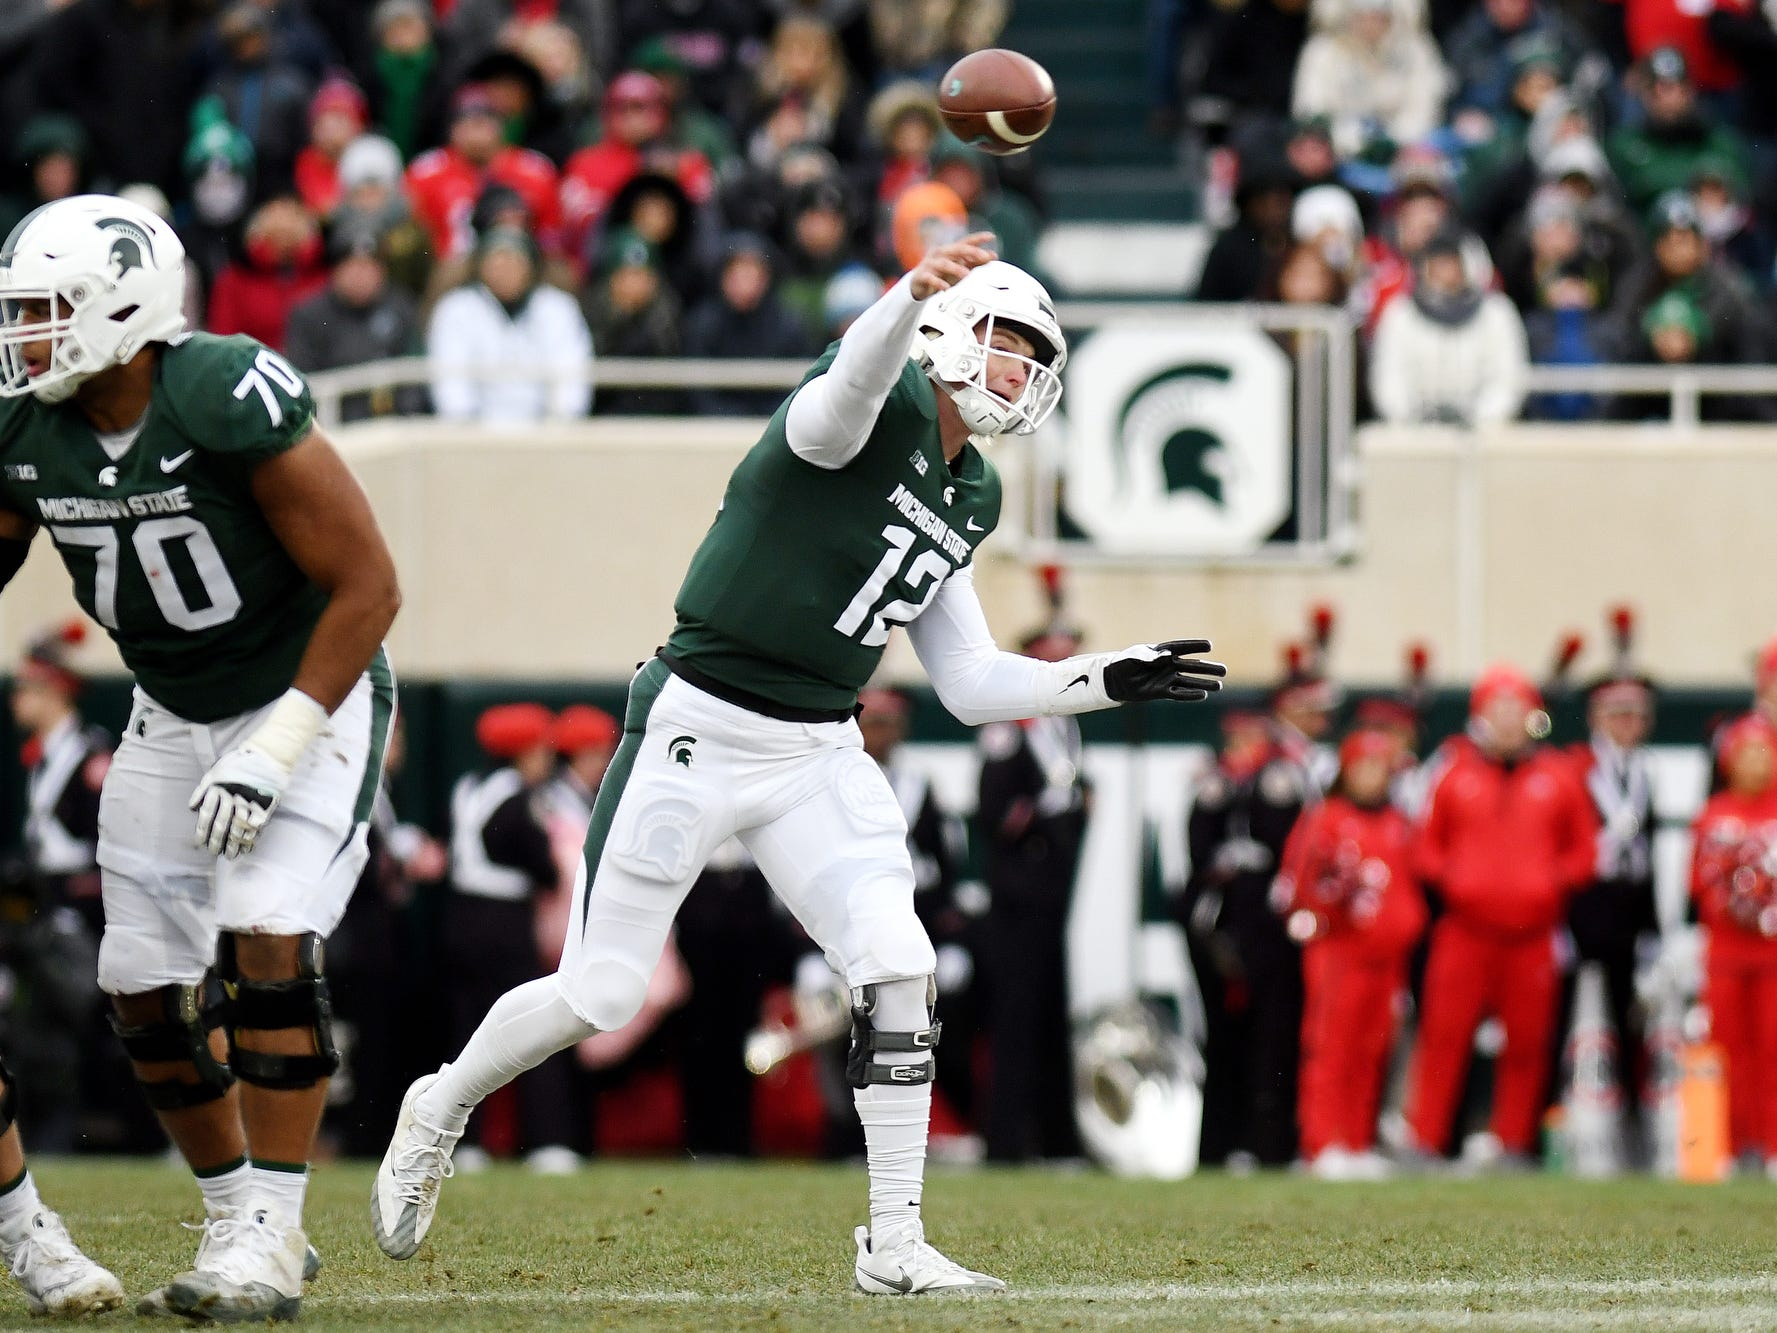 Michigan State's Rocky Lombardi throws a pass during the second quarter on Saturday, Nov. 10, 2018, in East Lansing.